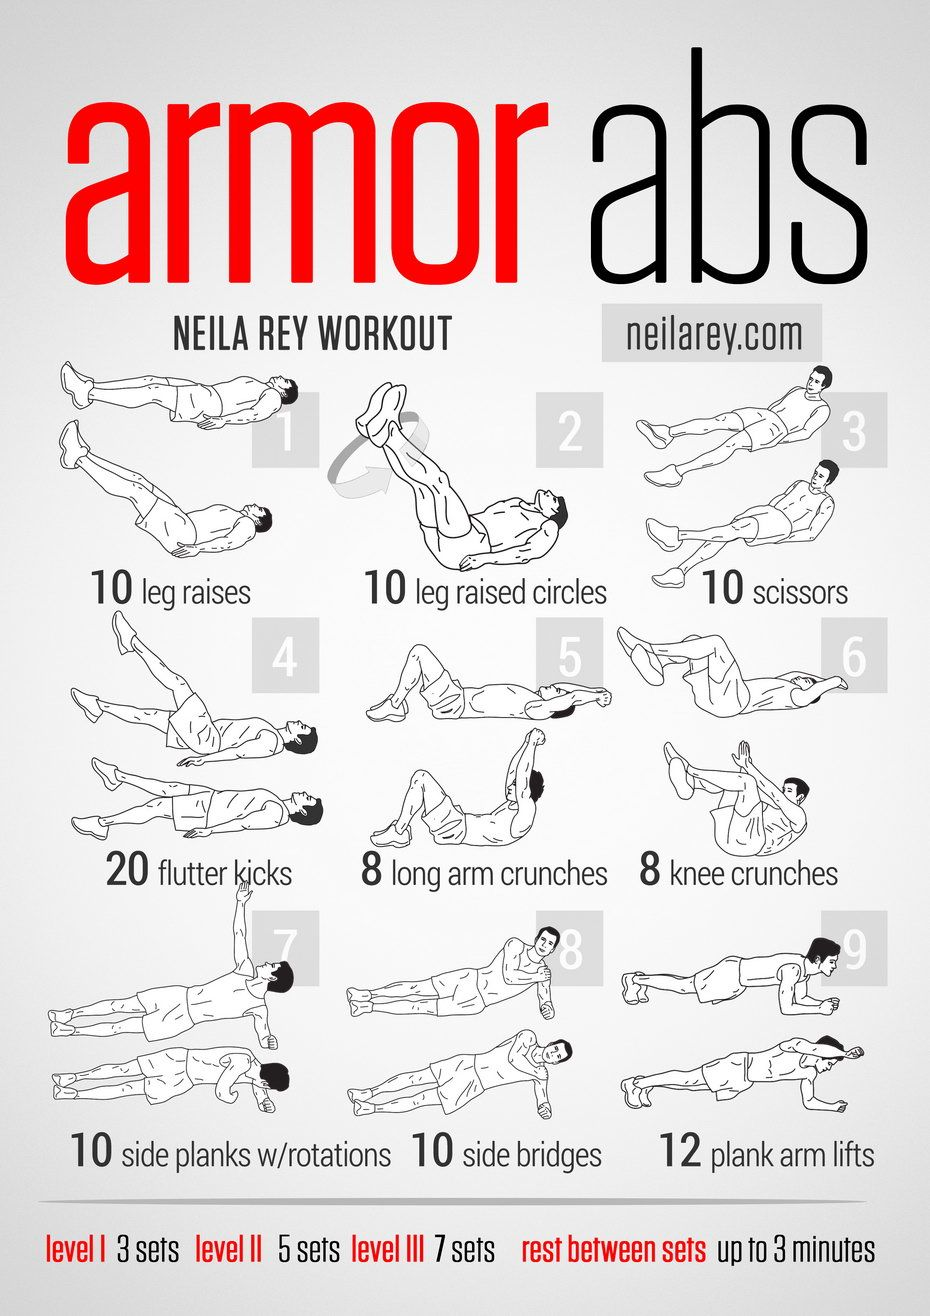 Armor Abs Workout WOW 3 Sets I Was Feelin The Burn